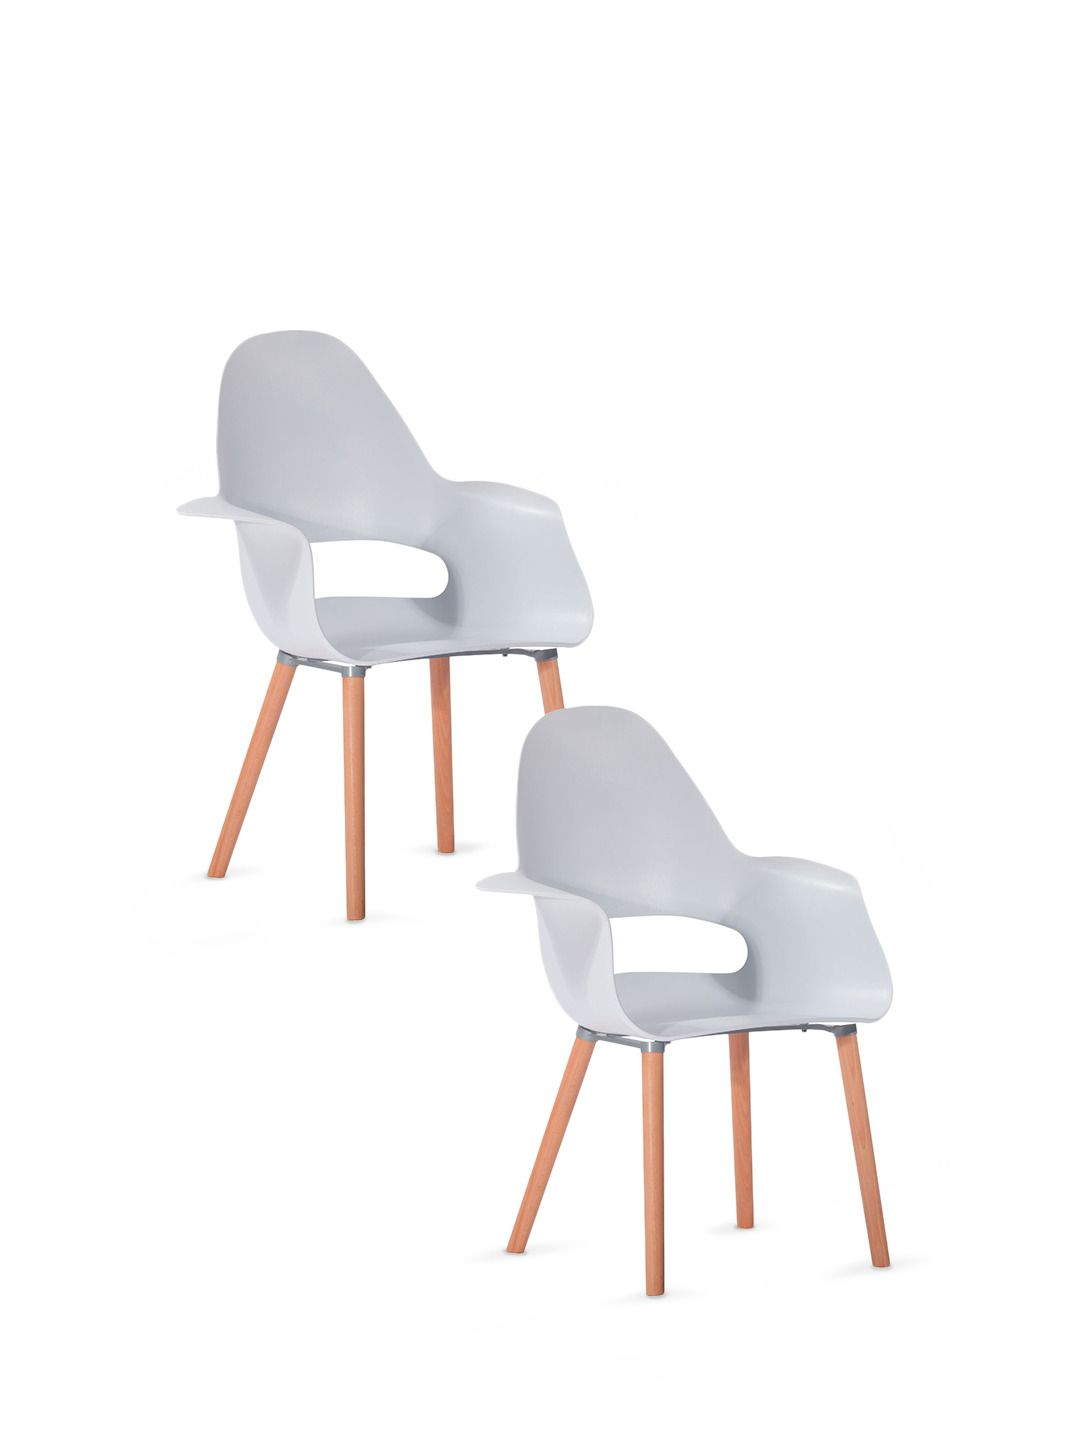 Awesome Winged Dining Side Chair   White   Set Of 2 By Dulce Modern Mid Century  Furniture On